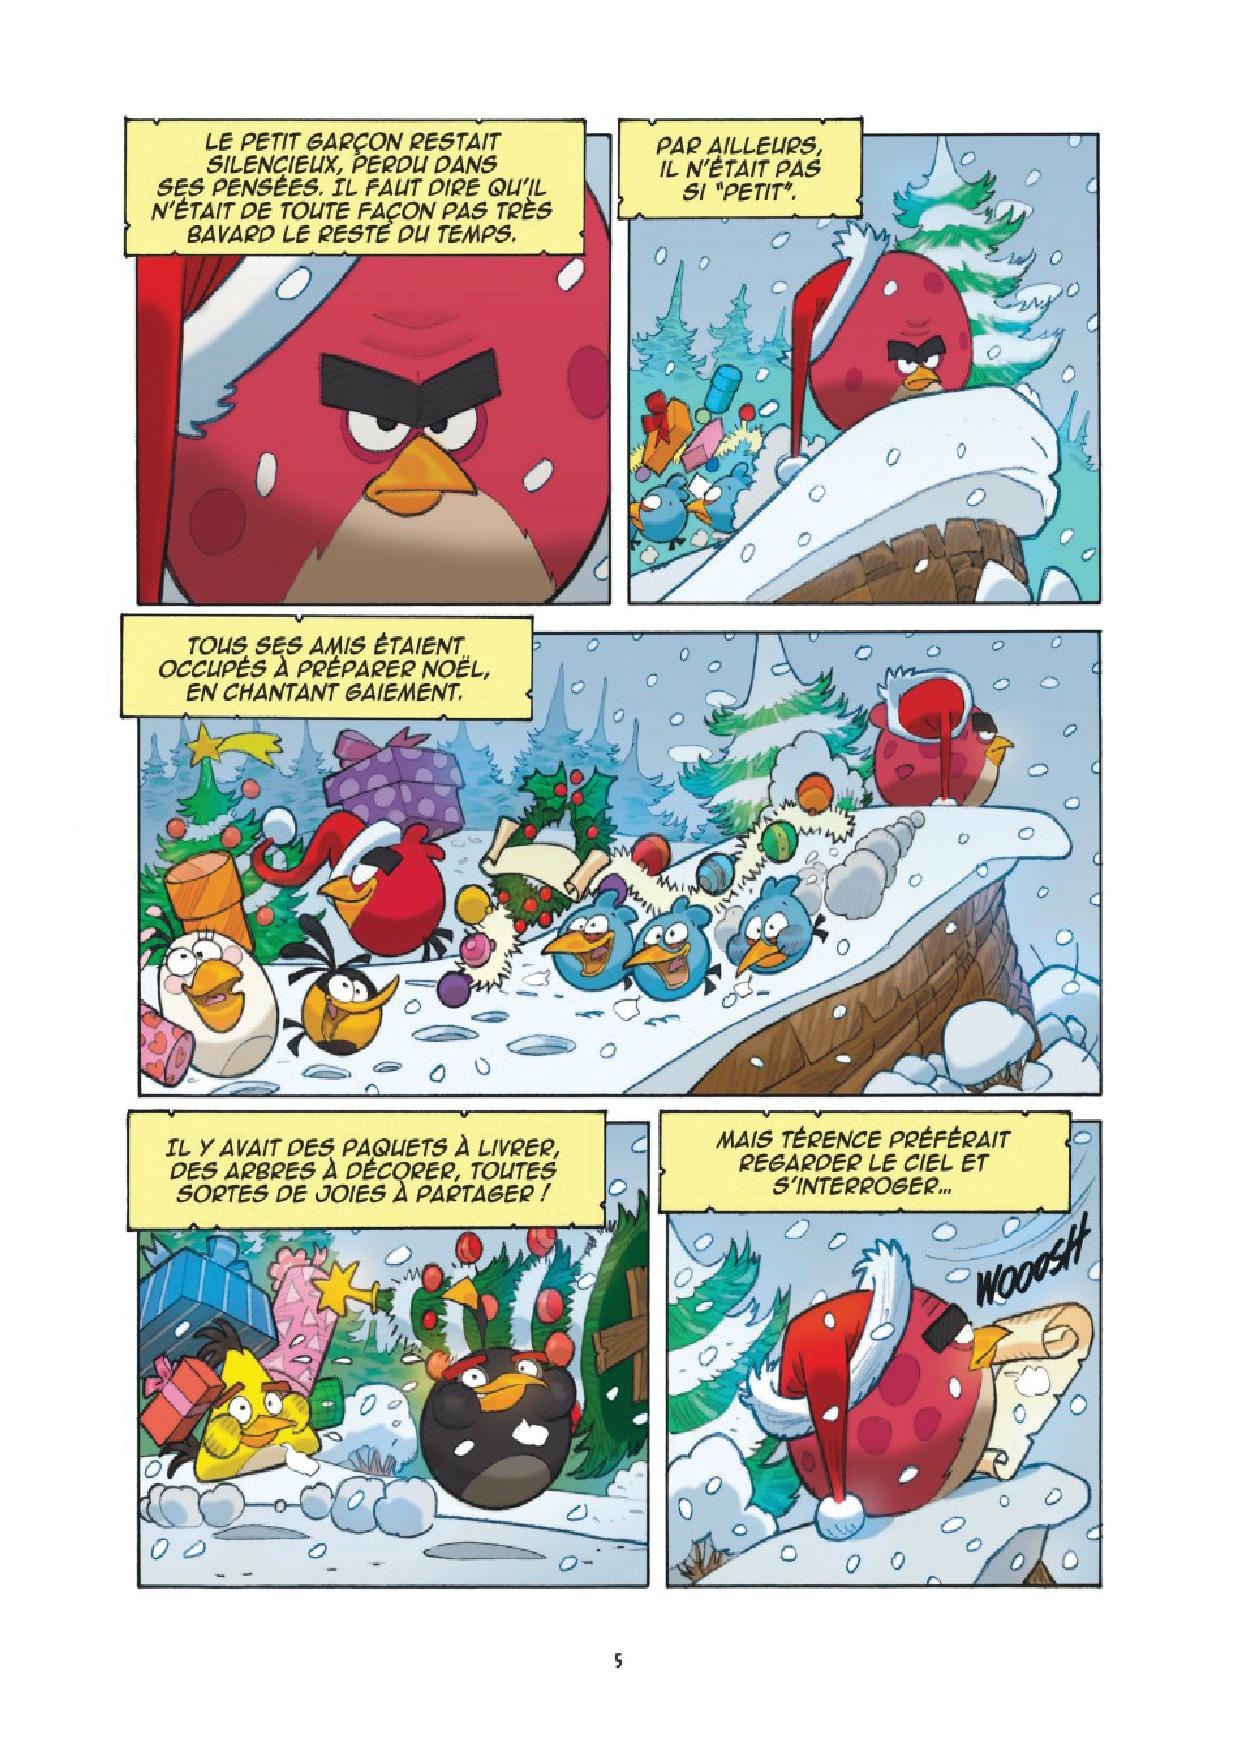 Angry_Birds#3_page5